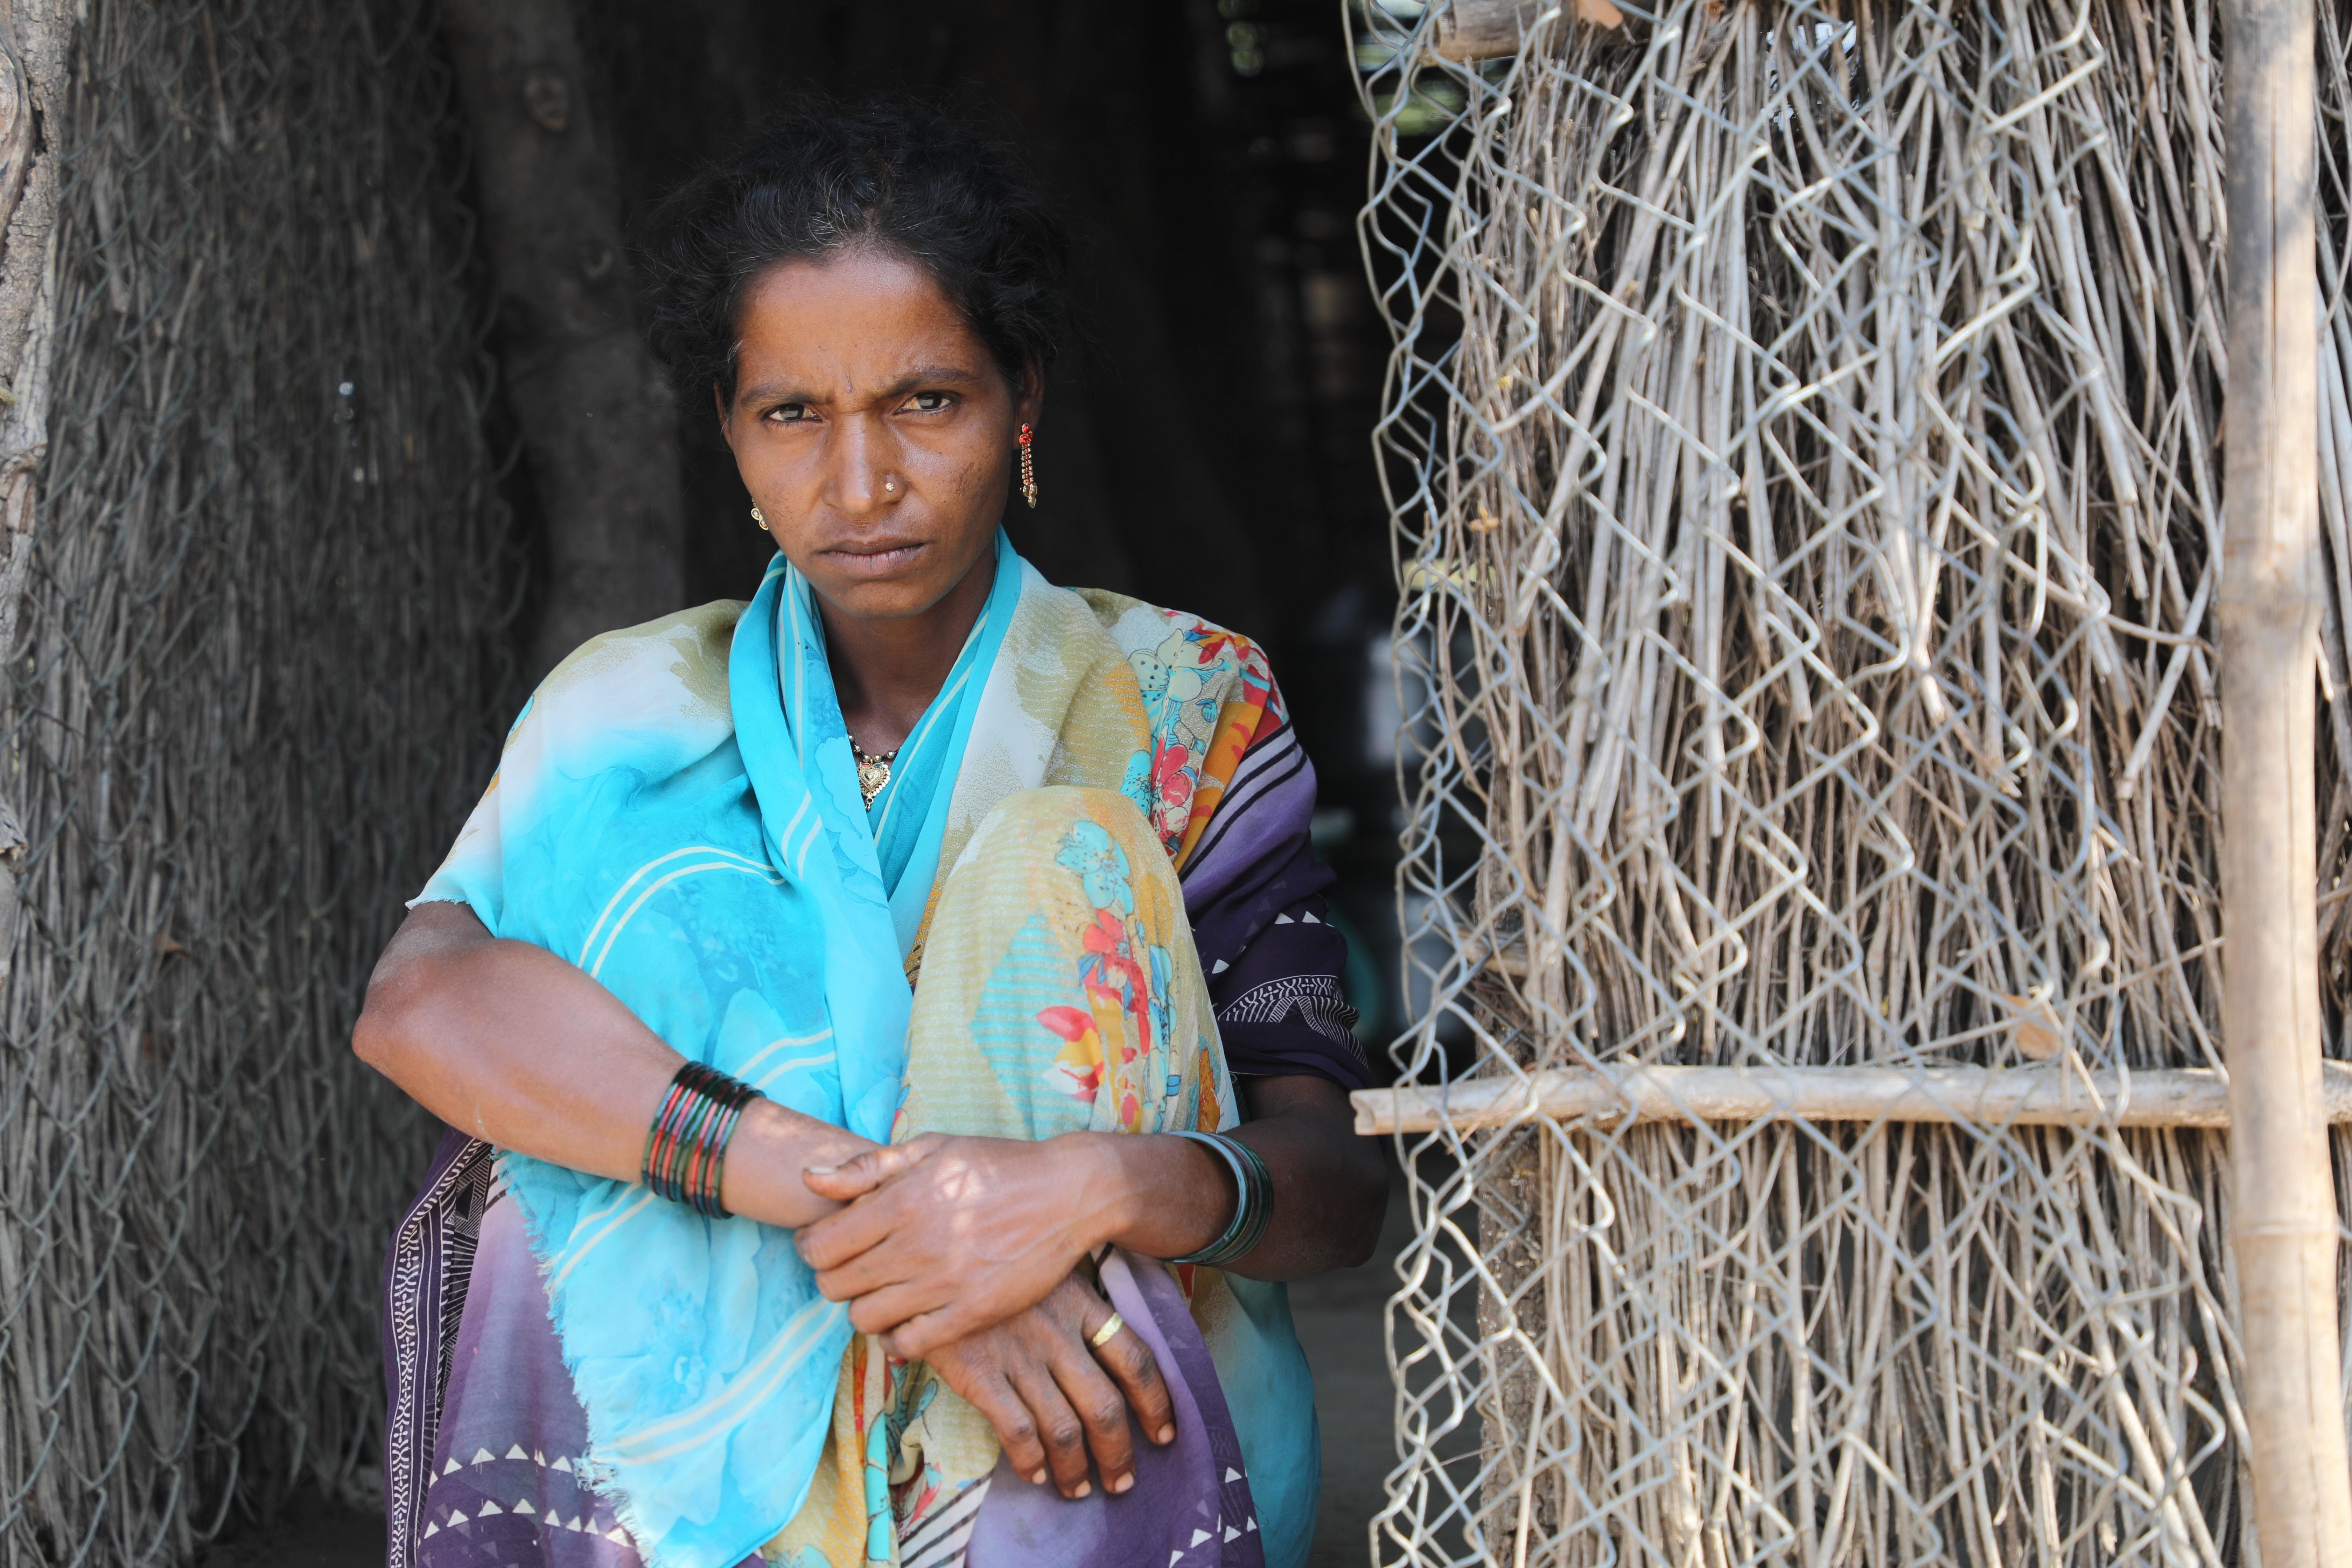 women, like this woman here, bear the brunt of global crises such as COVID-19 and climate change